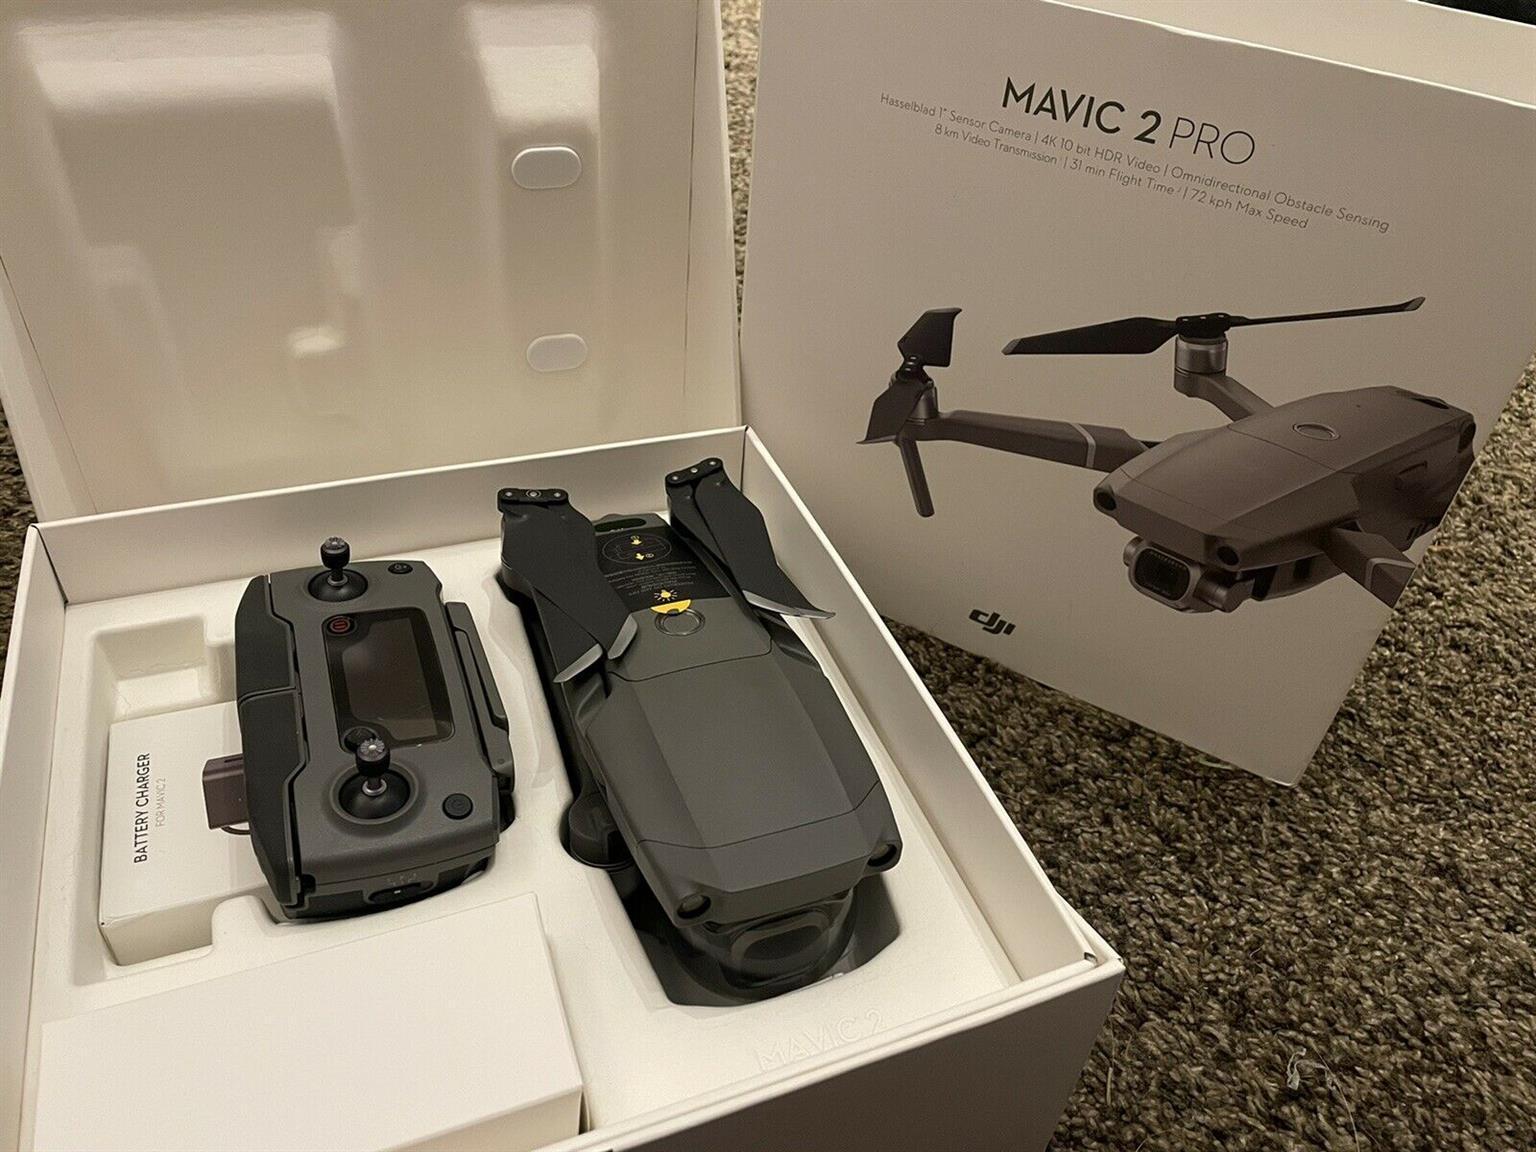 Dji Mavic Pro 2 Drone with 12 hours of flight time